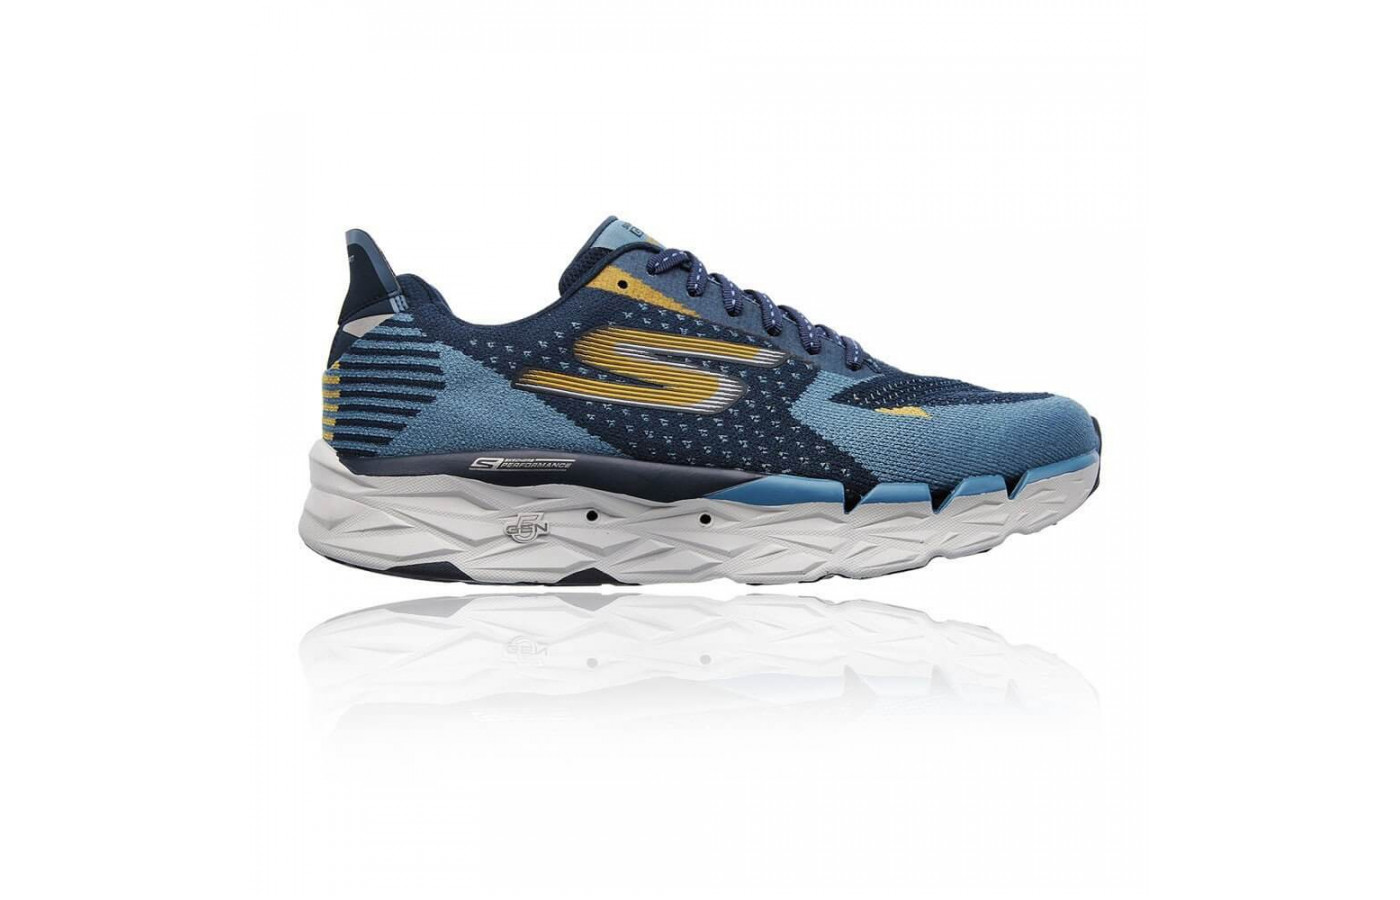 The Skechers GoRun Ultra Road features numerous drainage holes